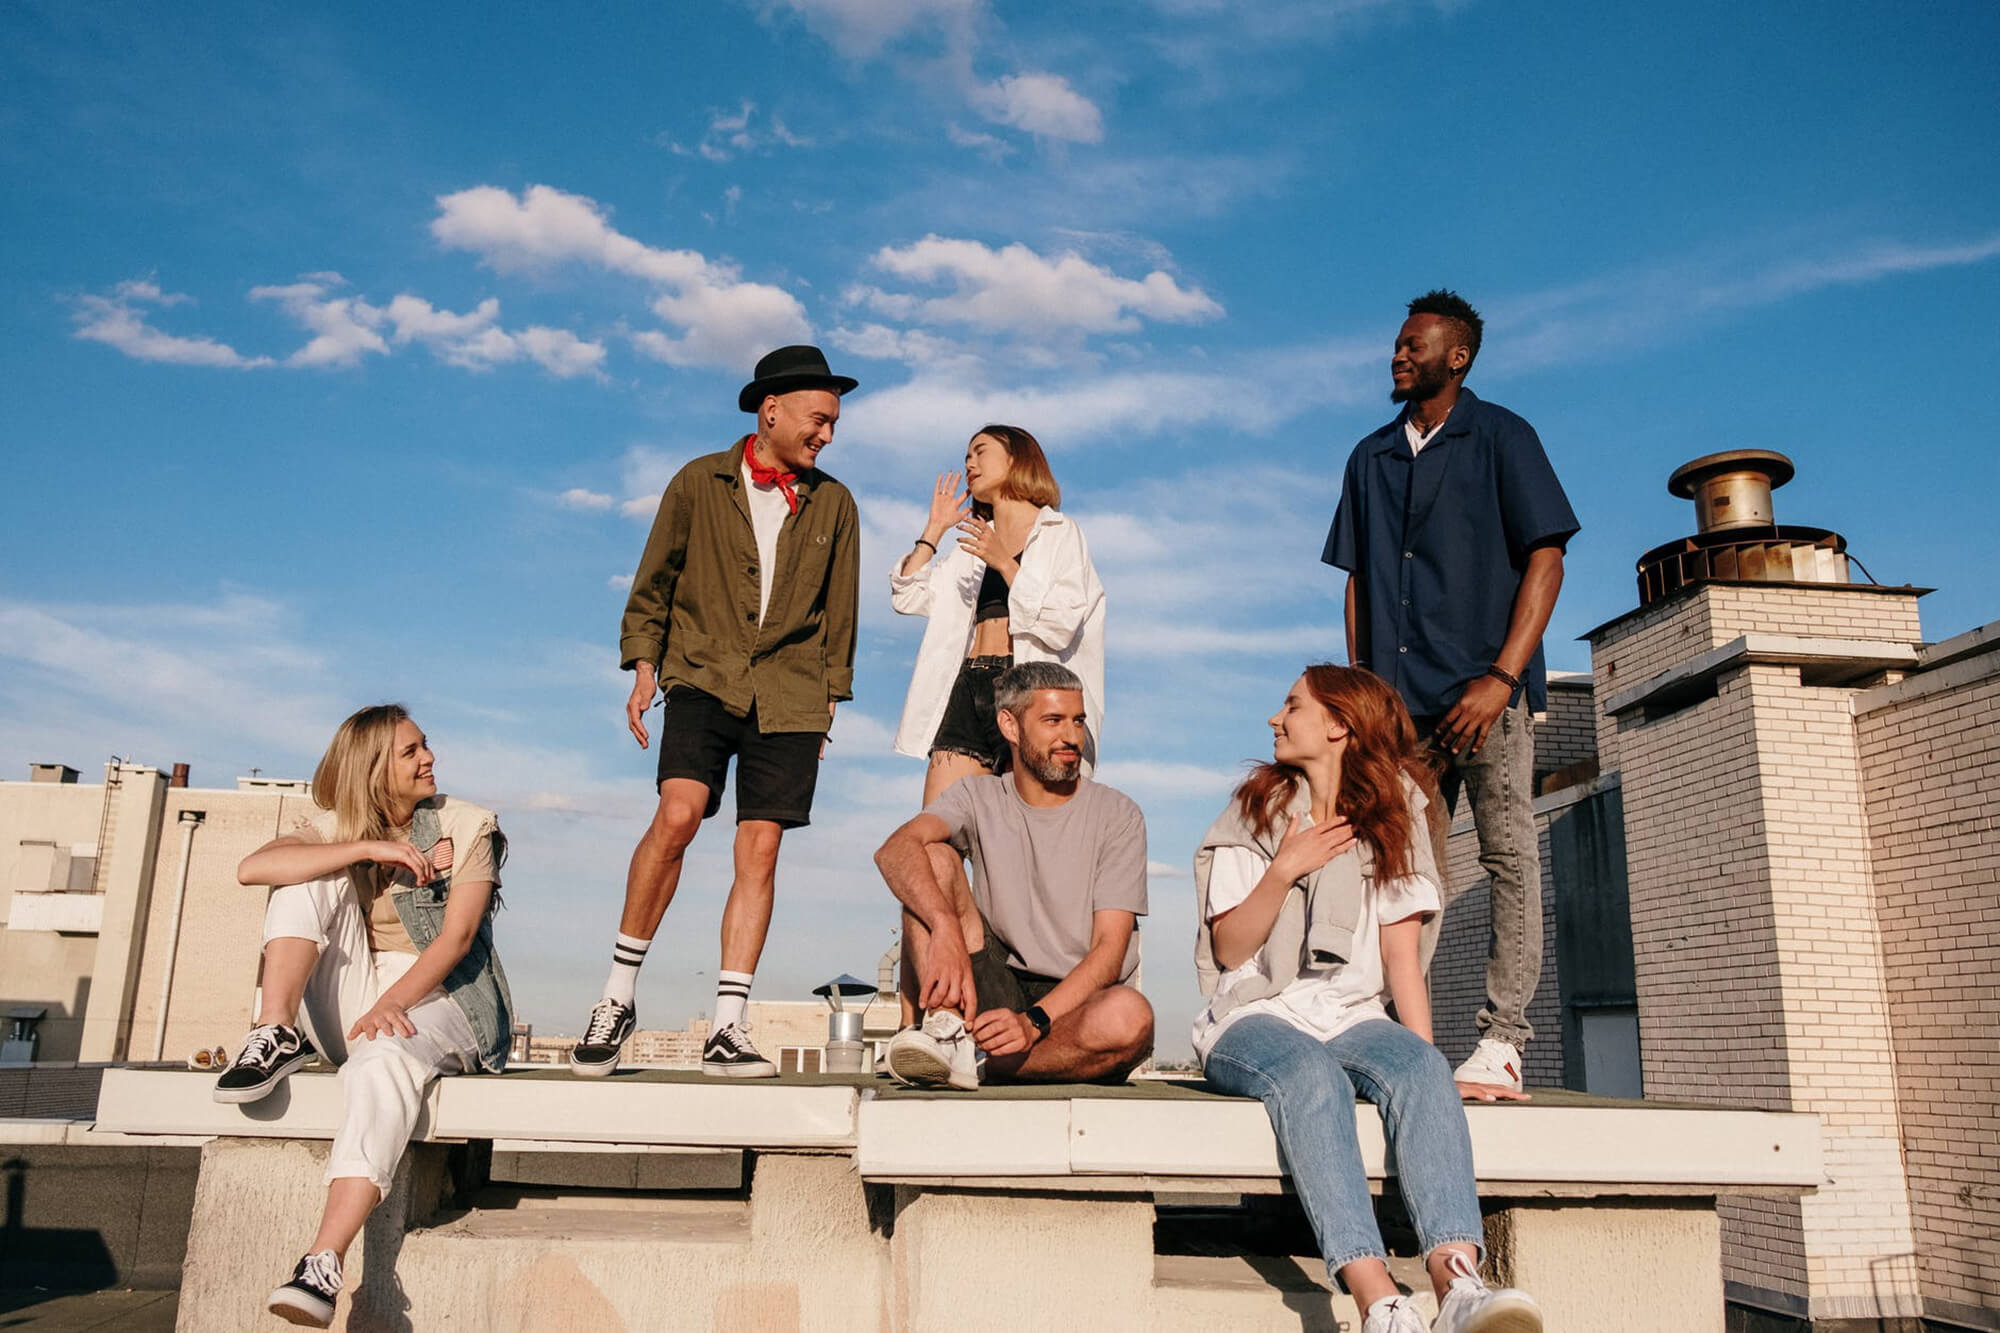 Group of people standing on top of a building